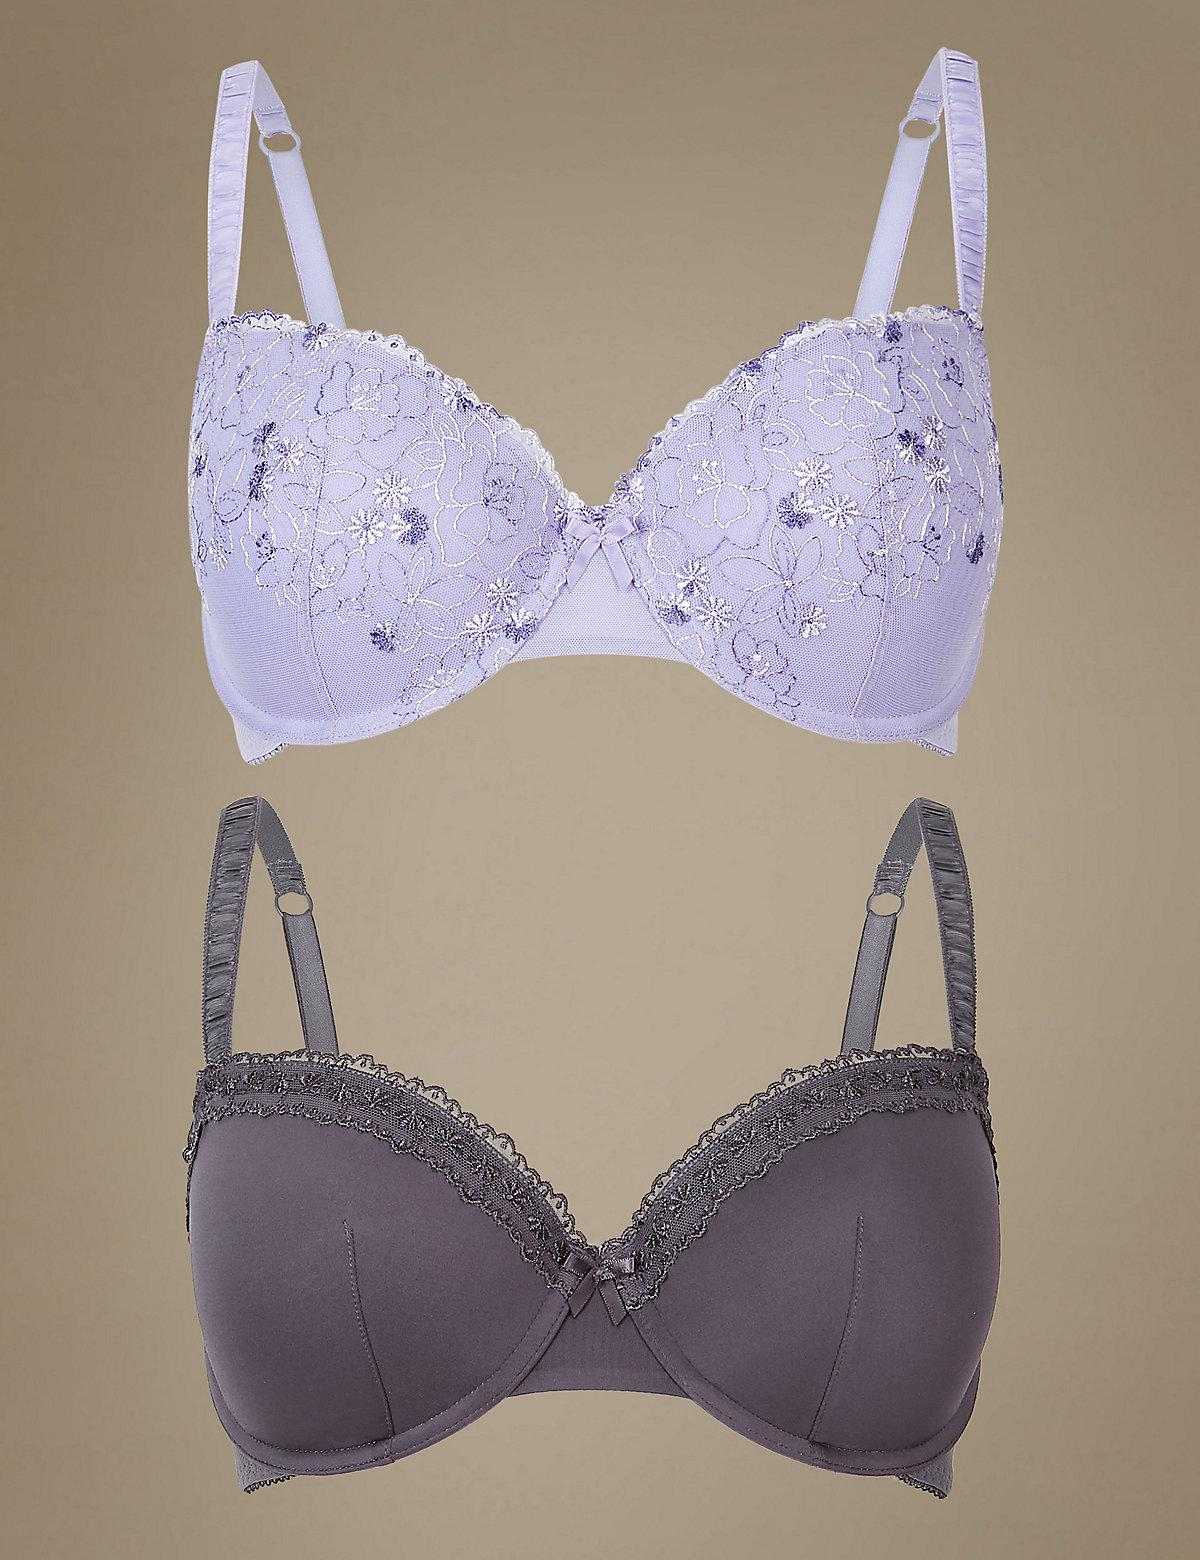 086a1caa2dbfd Marks   Spencer. Women s 2 Pack Padded Push-up Balcony Bras A-e